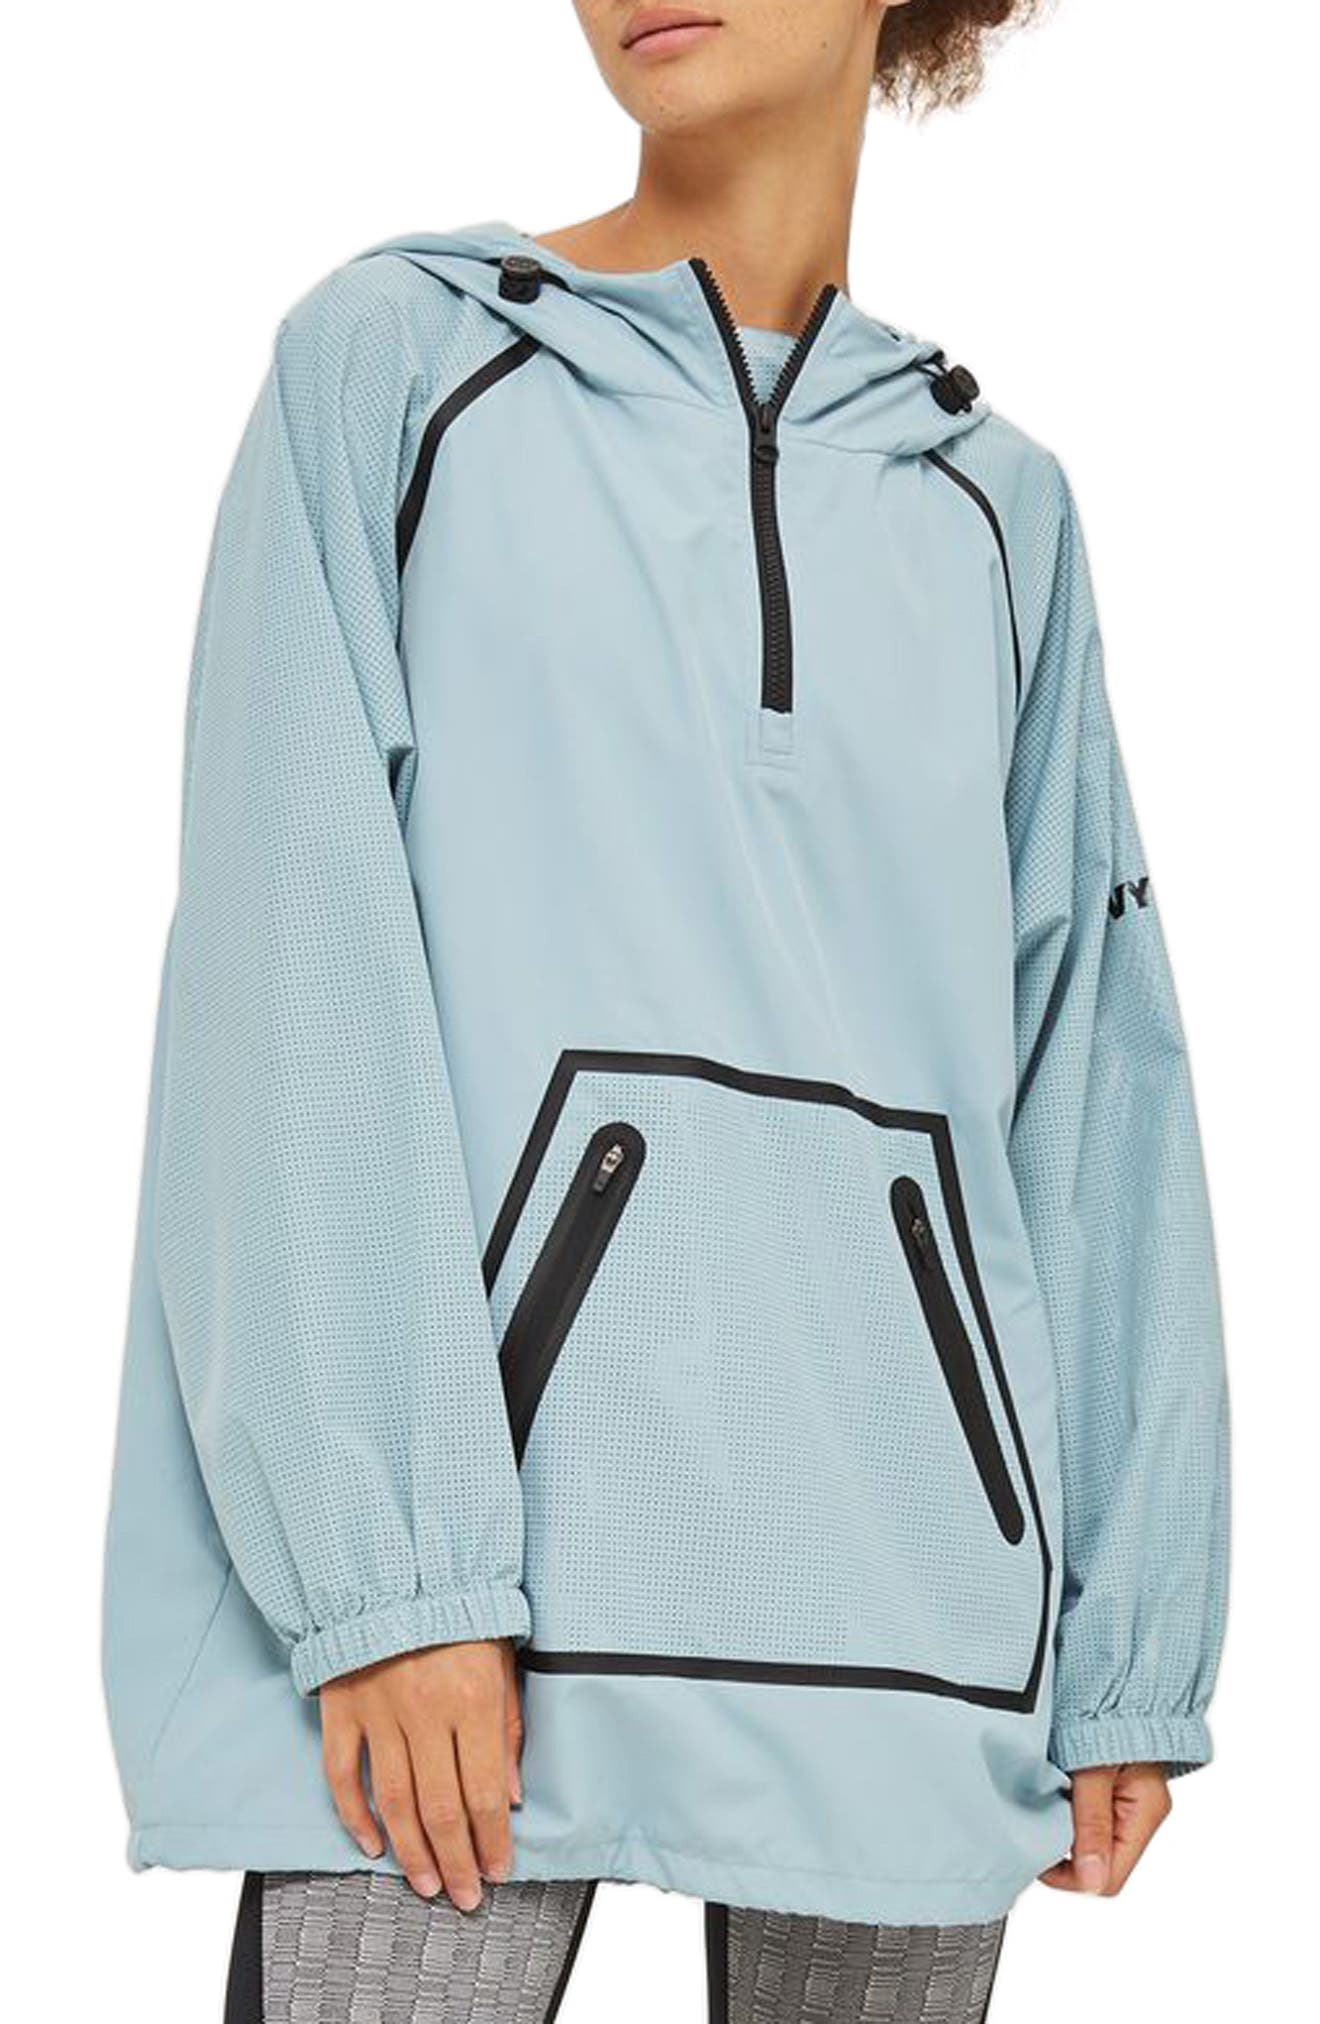 Main Image - IVY PARK® Perforated Pullover Jacket